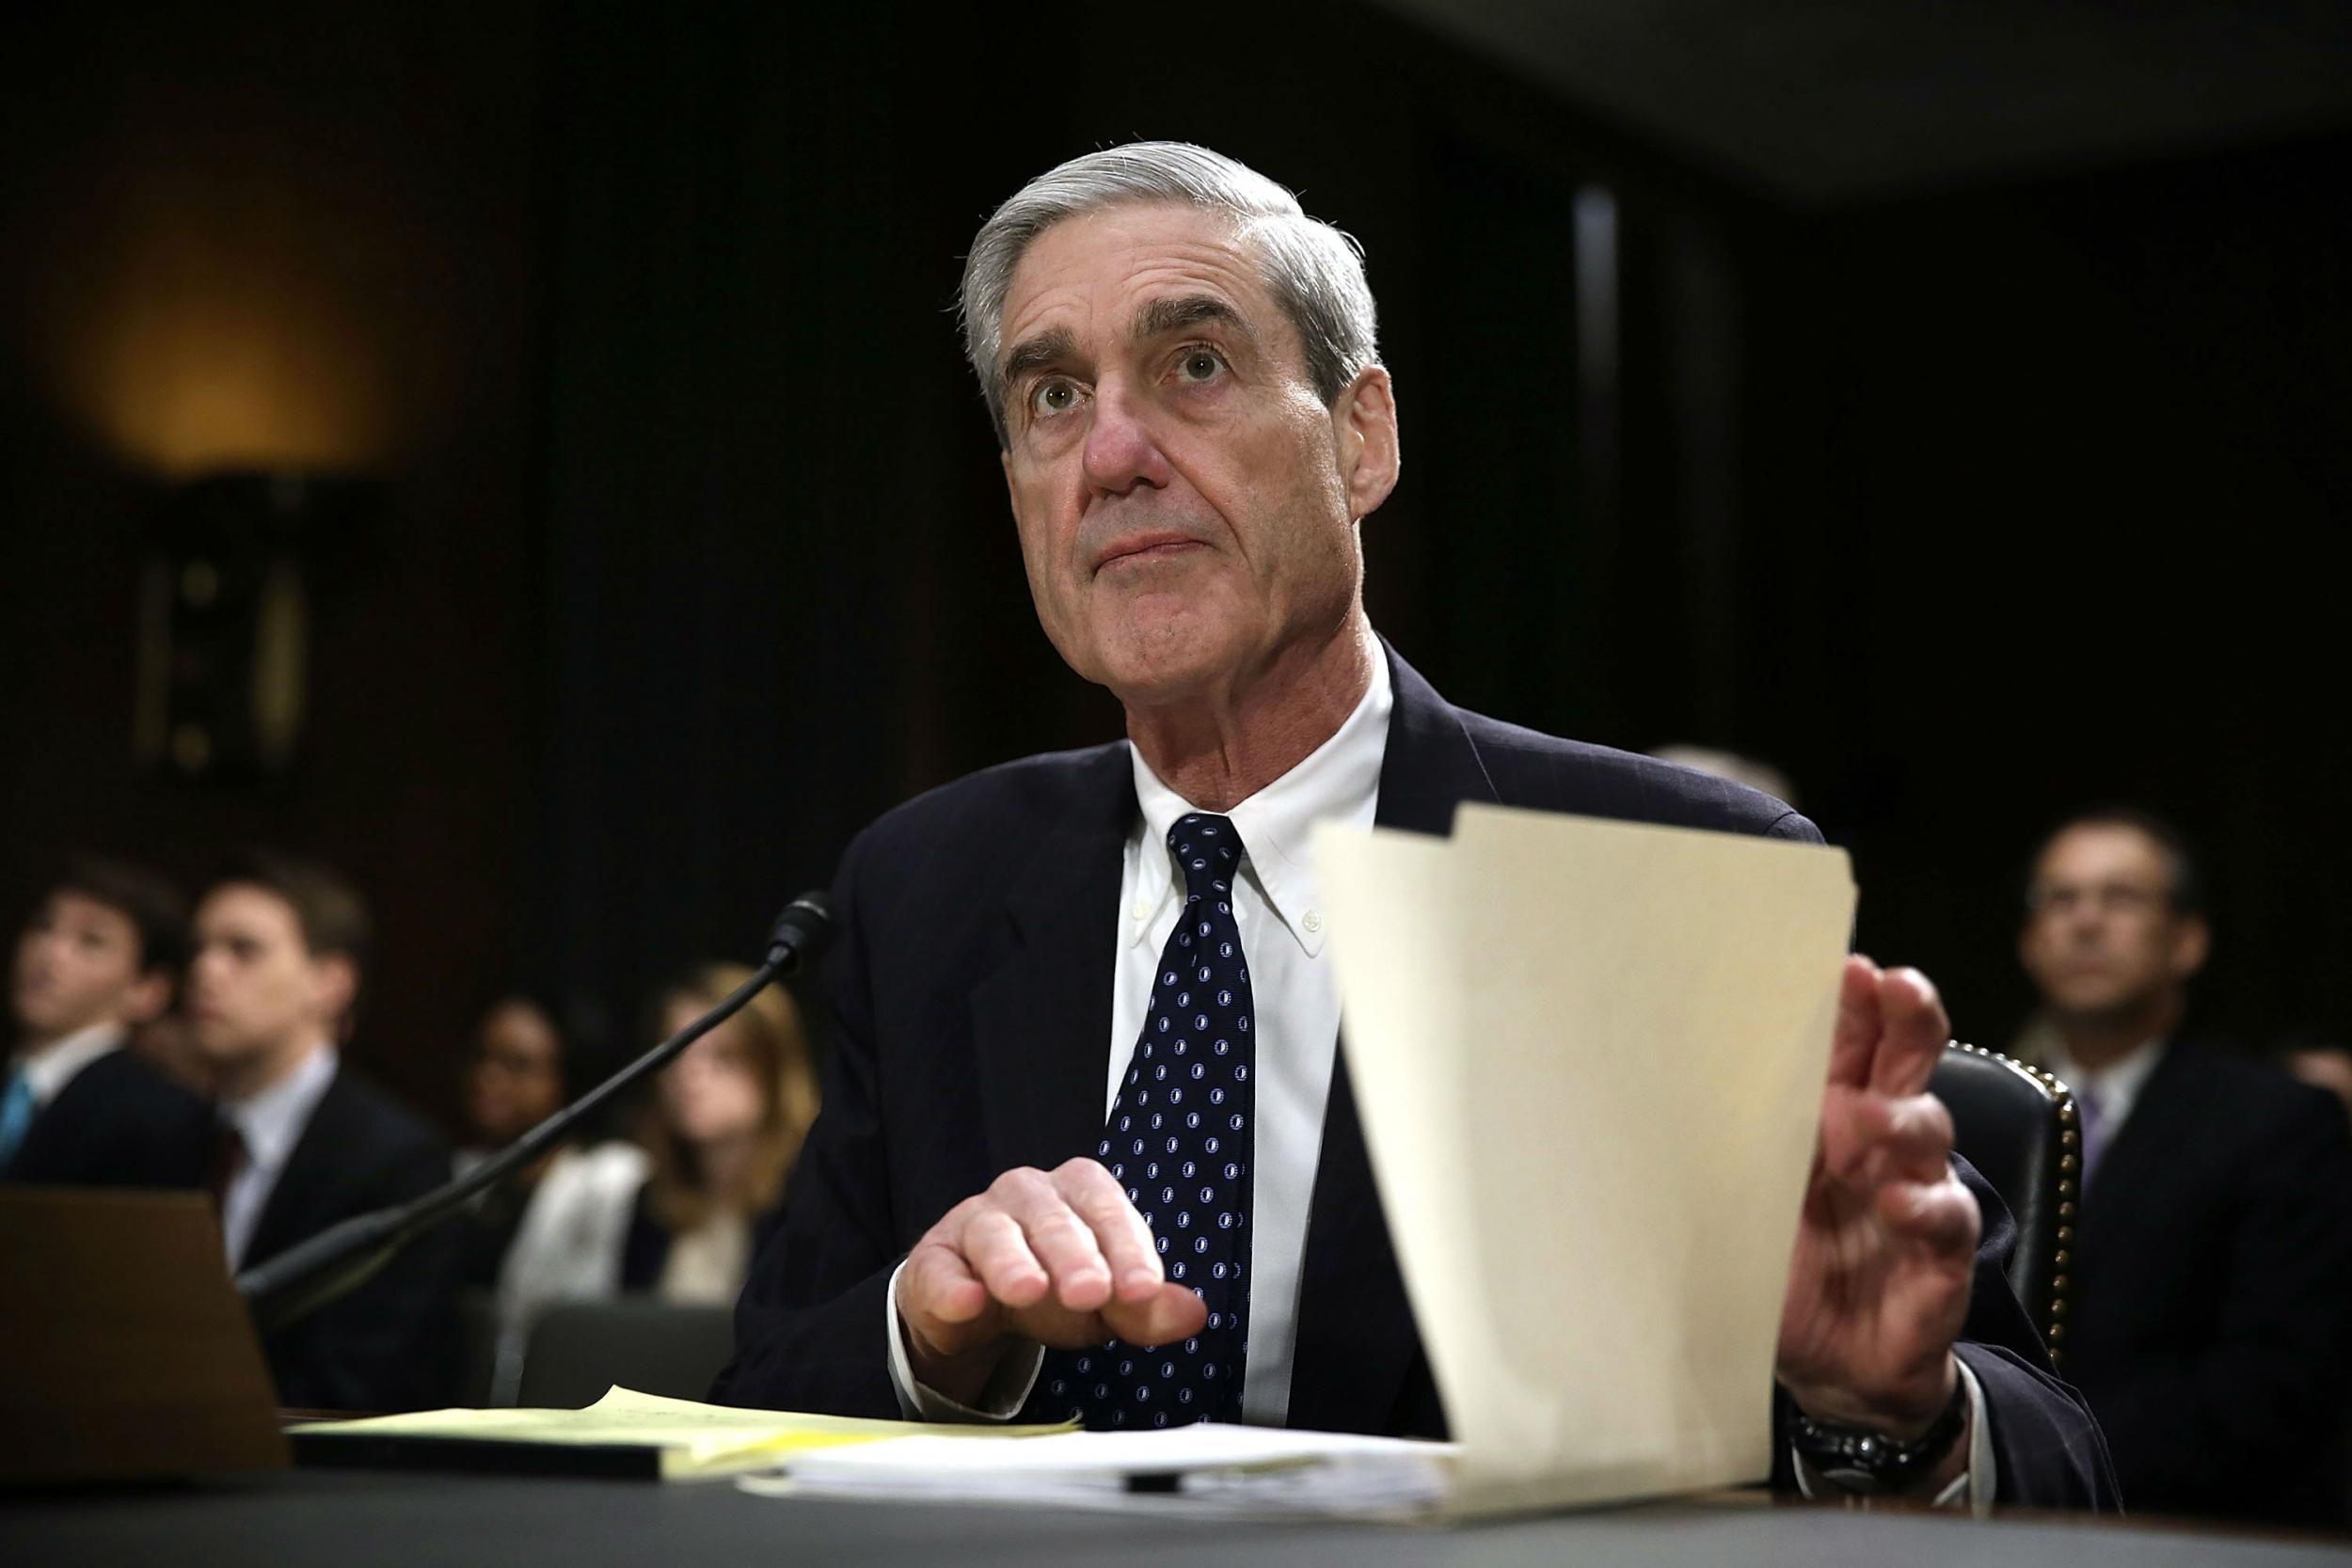 Mueller investigation probed if longstanding Trump fixer Cohen was unregistered foreign agent, search warrants reveal